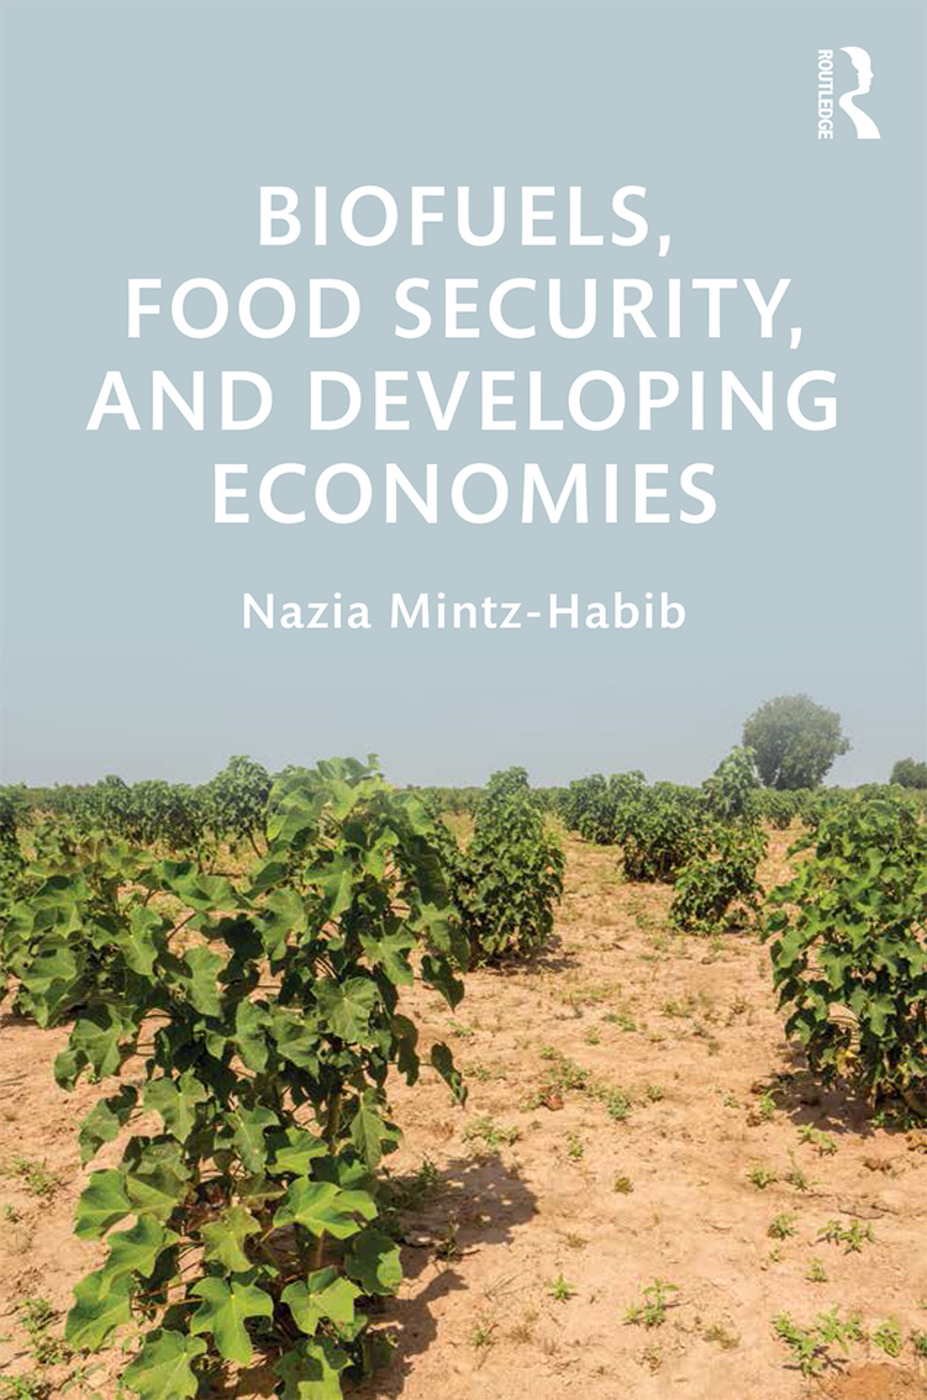 Biofuels, Food Security, and Developing Economies book cover